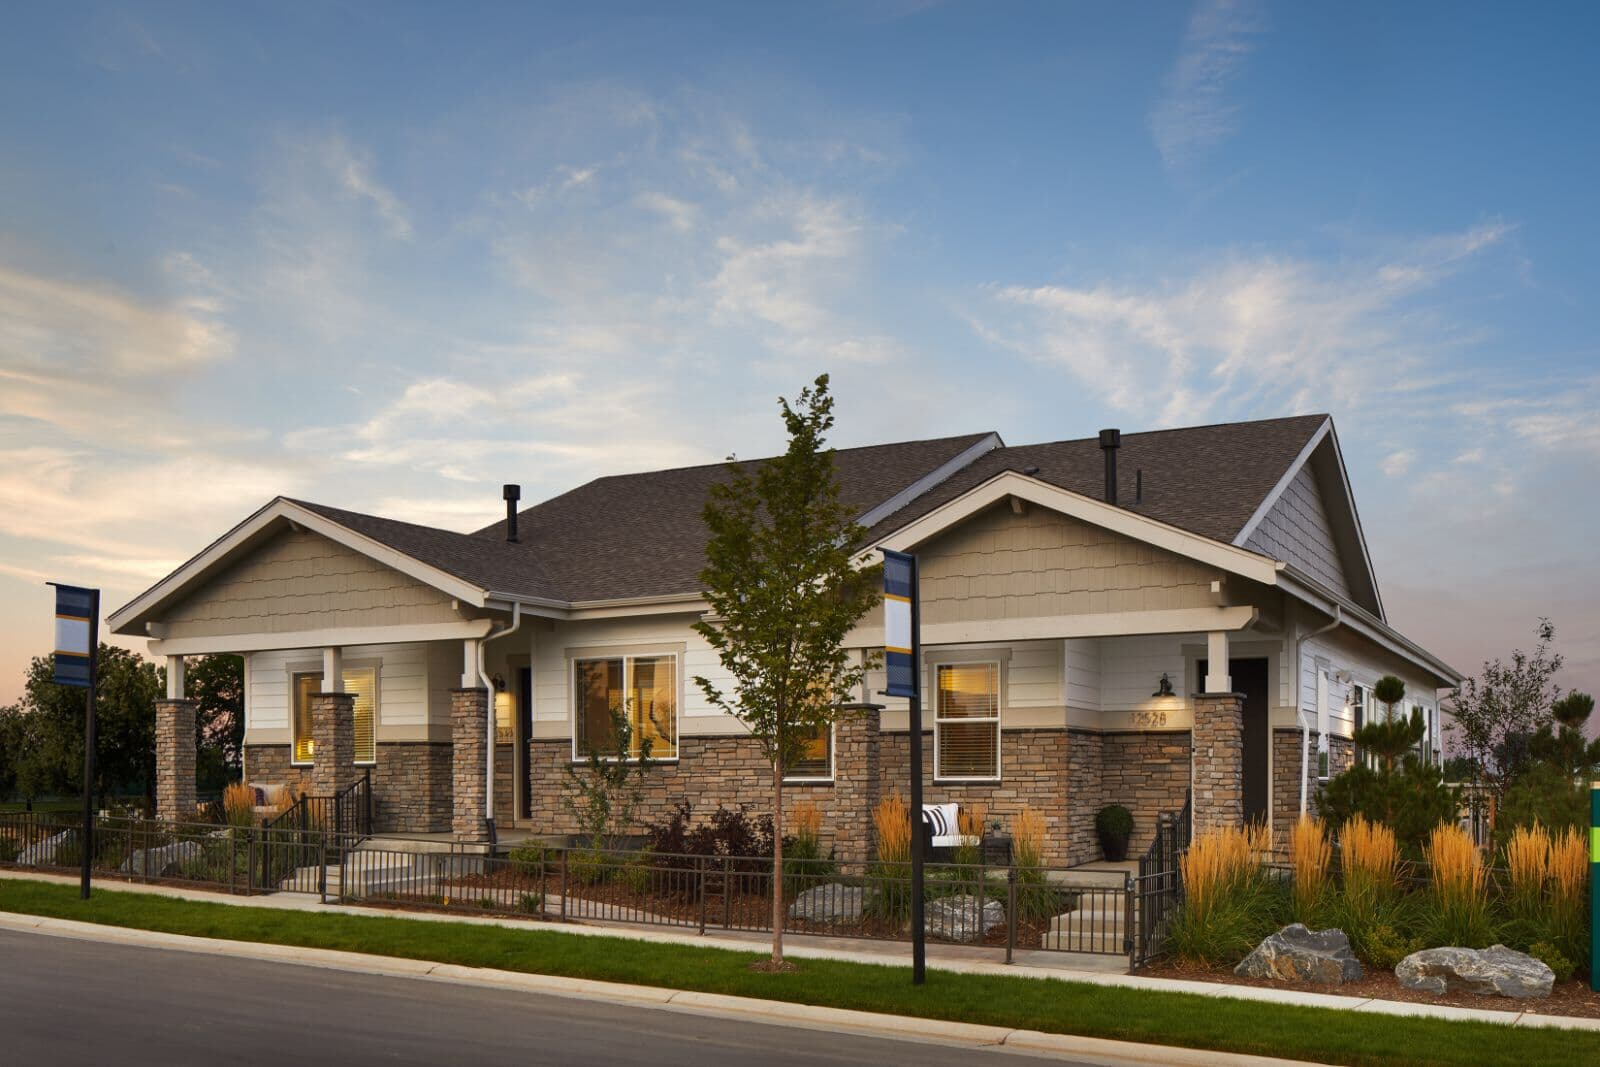 Villa-Two-Exterior-Barefoot-Lakes-Denver-Colorado